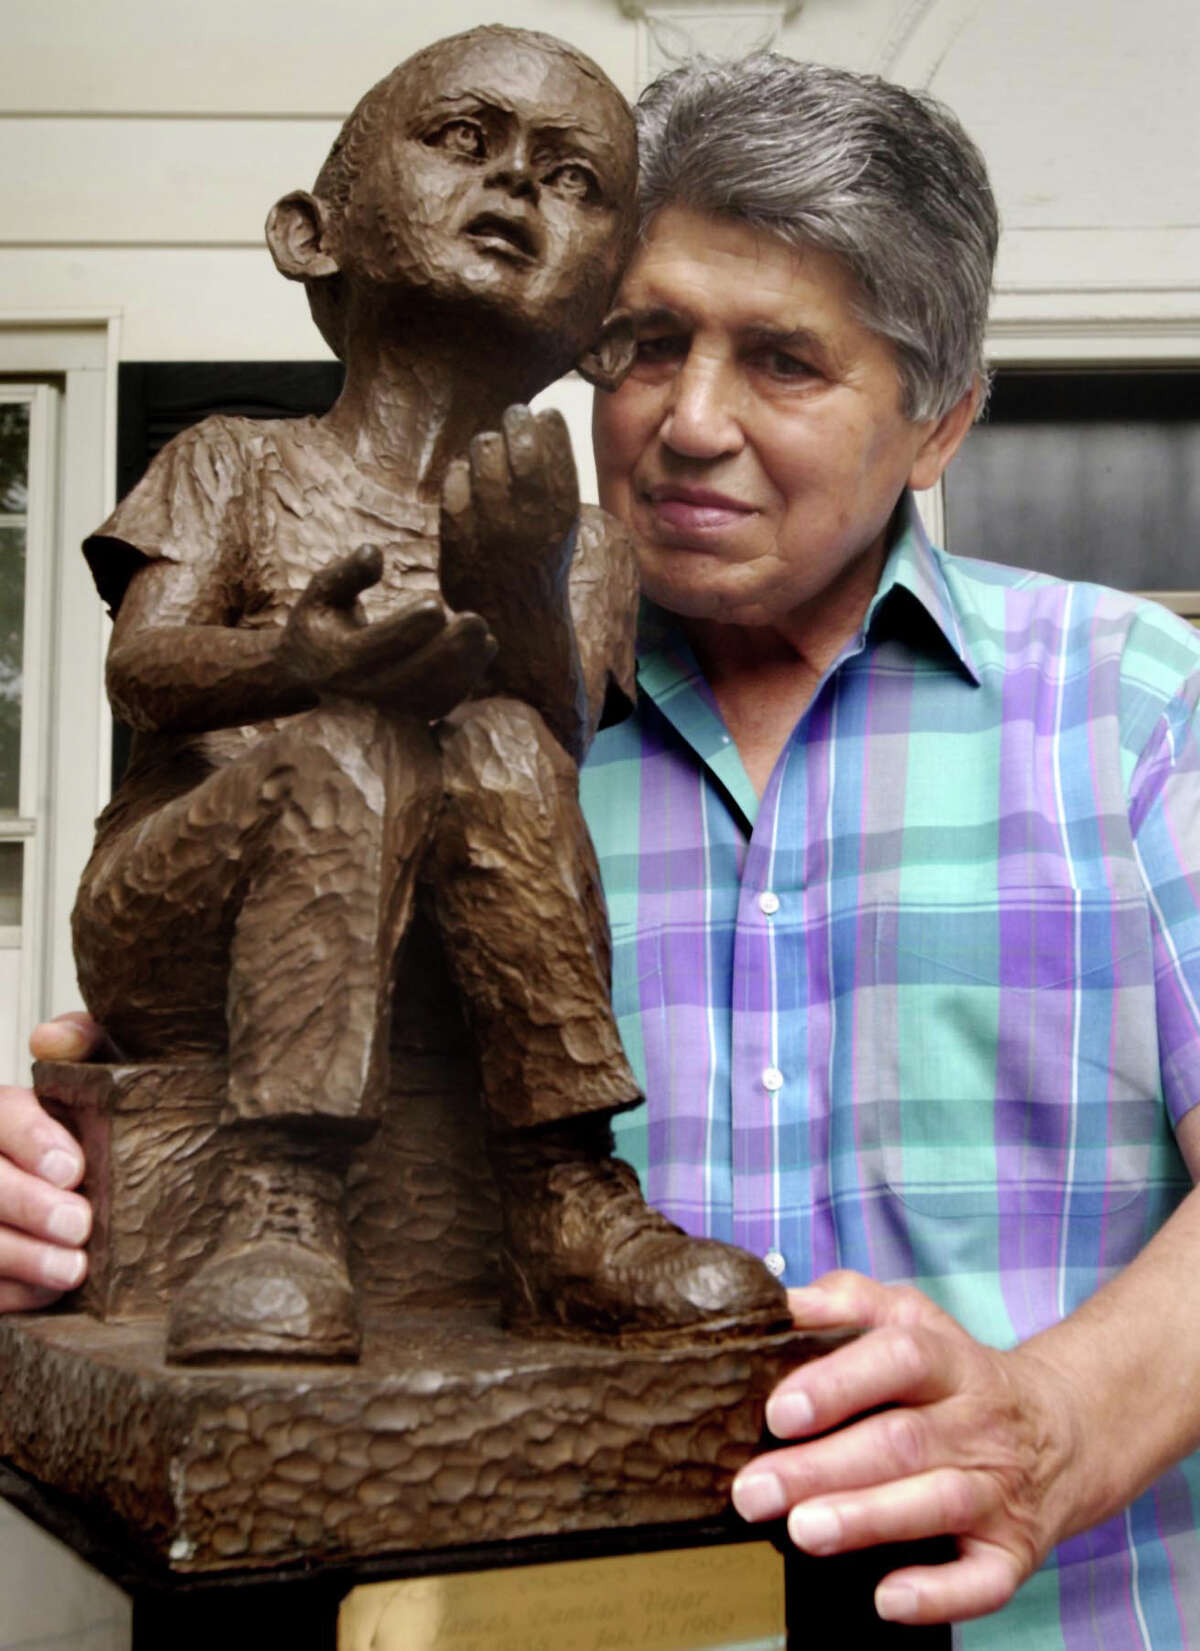 Chico Vejar, a former middleweight boxing contender from Stamford, visits the David G. Osterer Cerebral Palsy Center in Rye Brook, N.Y., where he founded the Jimmy Vejar Day Camp in honor of his son, who died from cerebral palsy. Jimmy is memorialized in the sculpture.